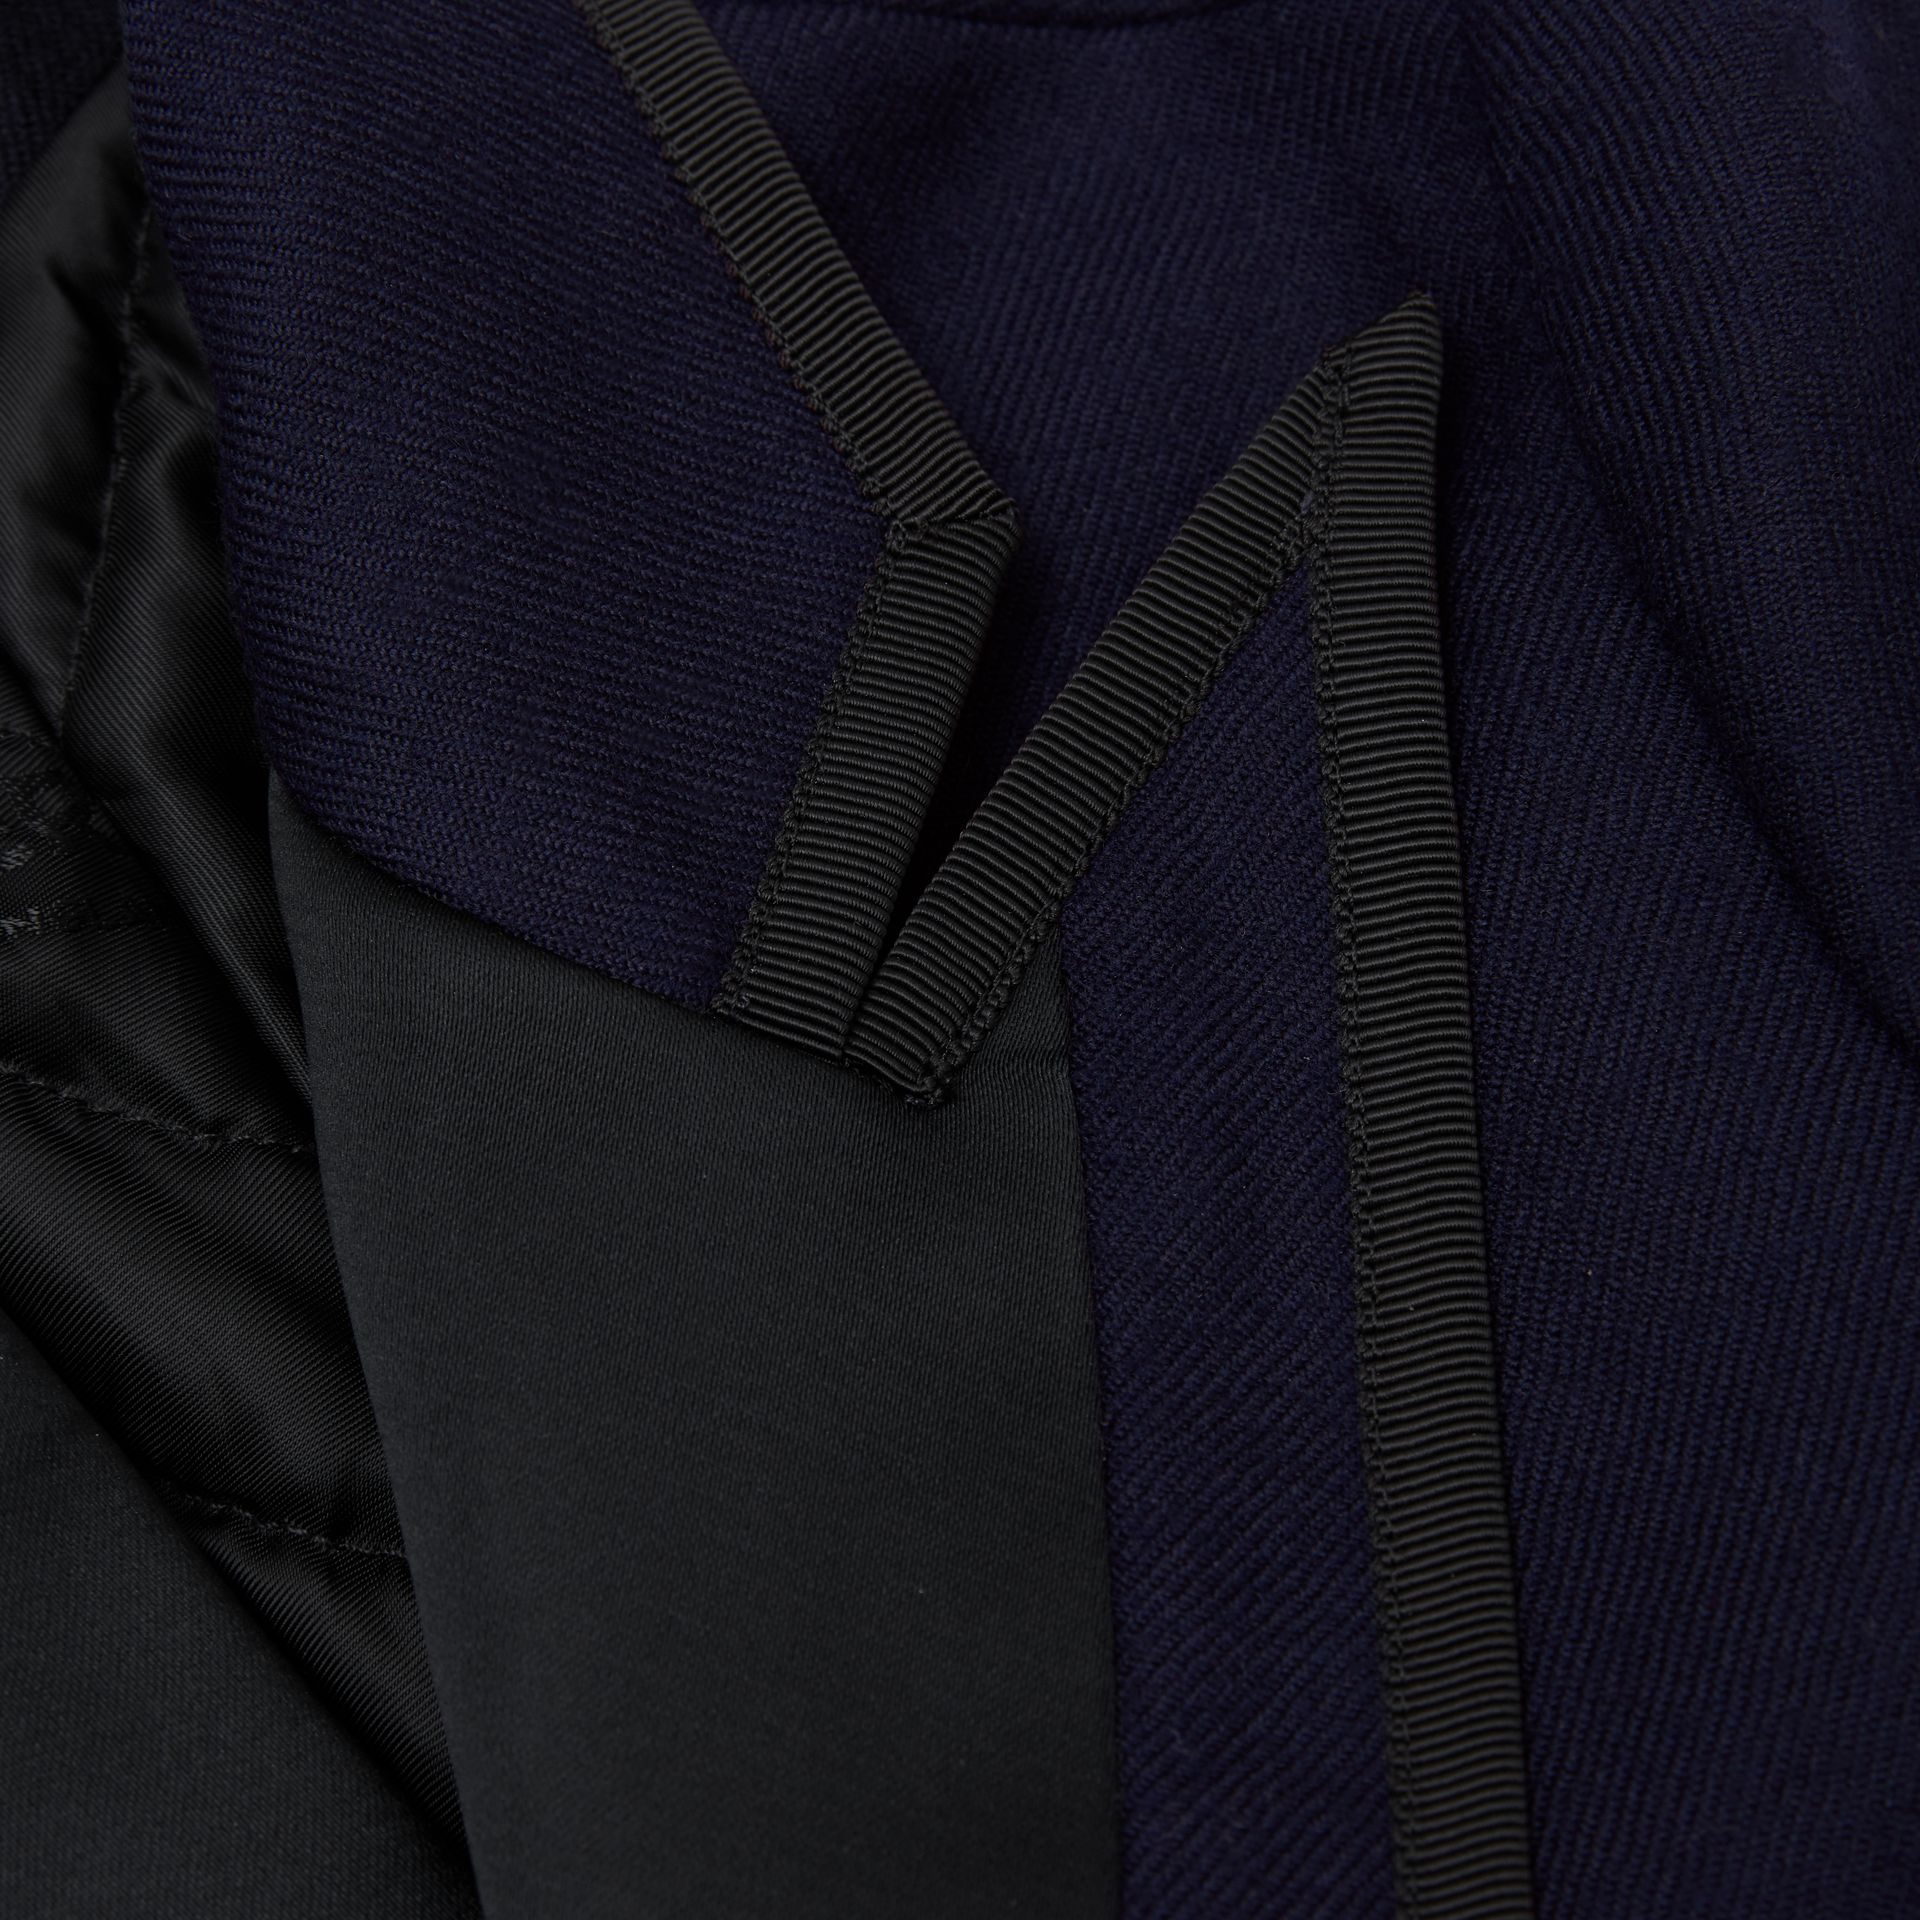 Satin Trim Wool Twill Tailored Jacket in Navy | Burberry Australia - gallery image 1